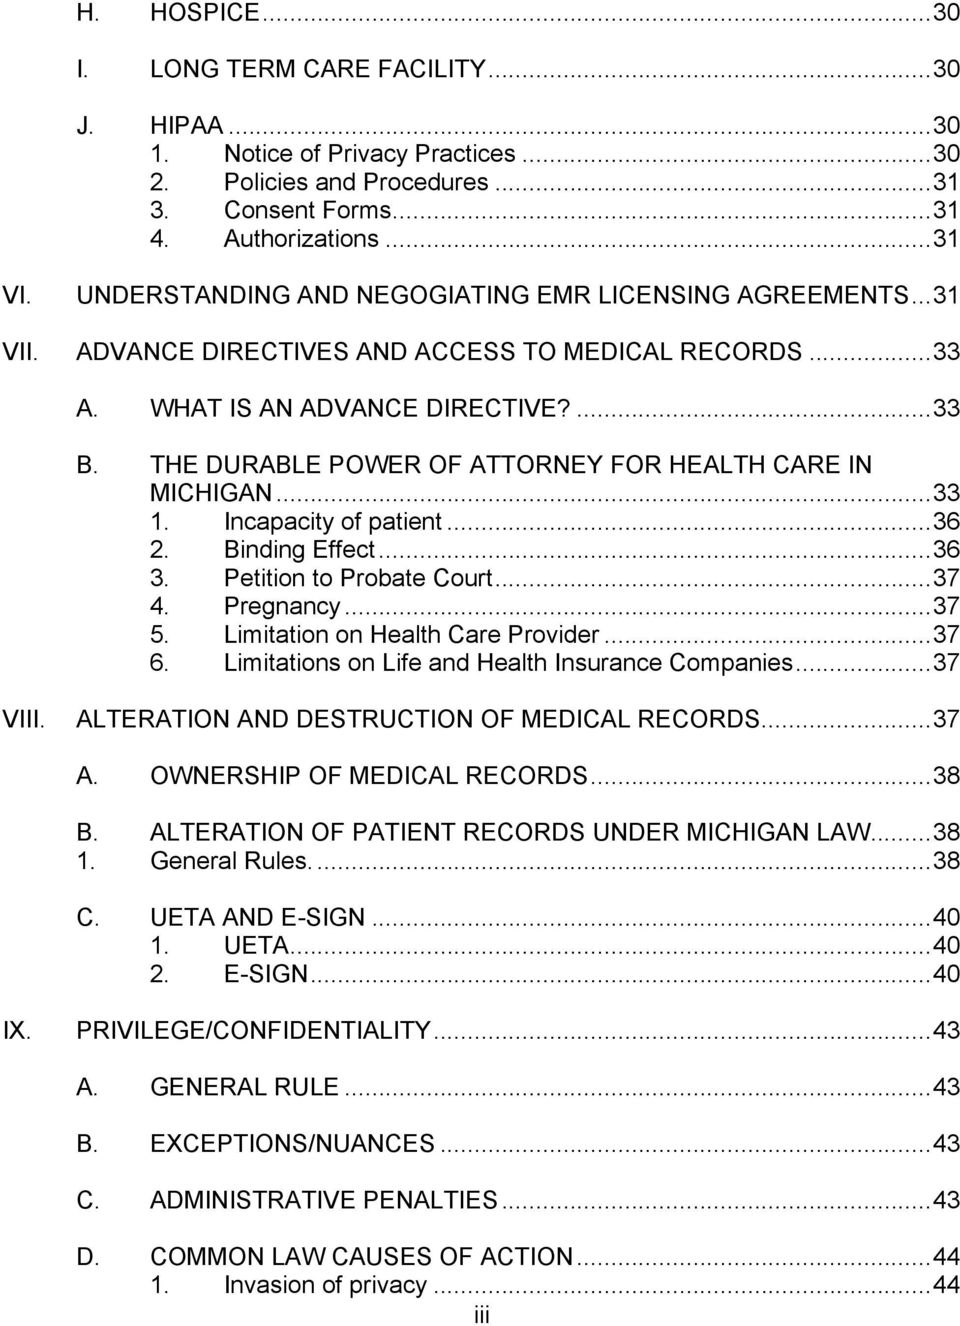 THE DURABLE POWER OF ATTORNEY FOR HEALTH CARE IN MICHIGAN...33 1. Incapacity of patient...36 2. Binding Effect...36 3. Petition to Probate Court...37 4. Pregnancy...37 5.